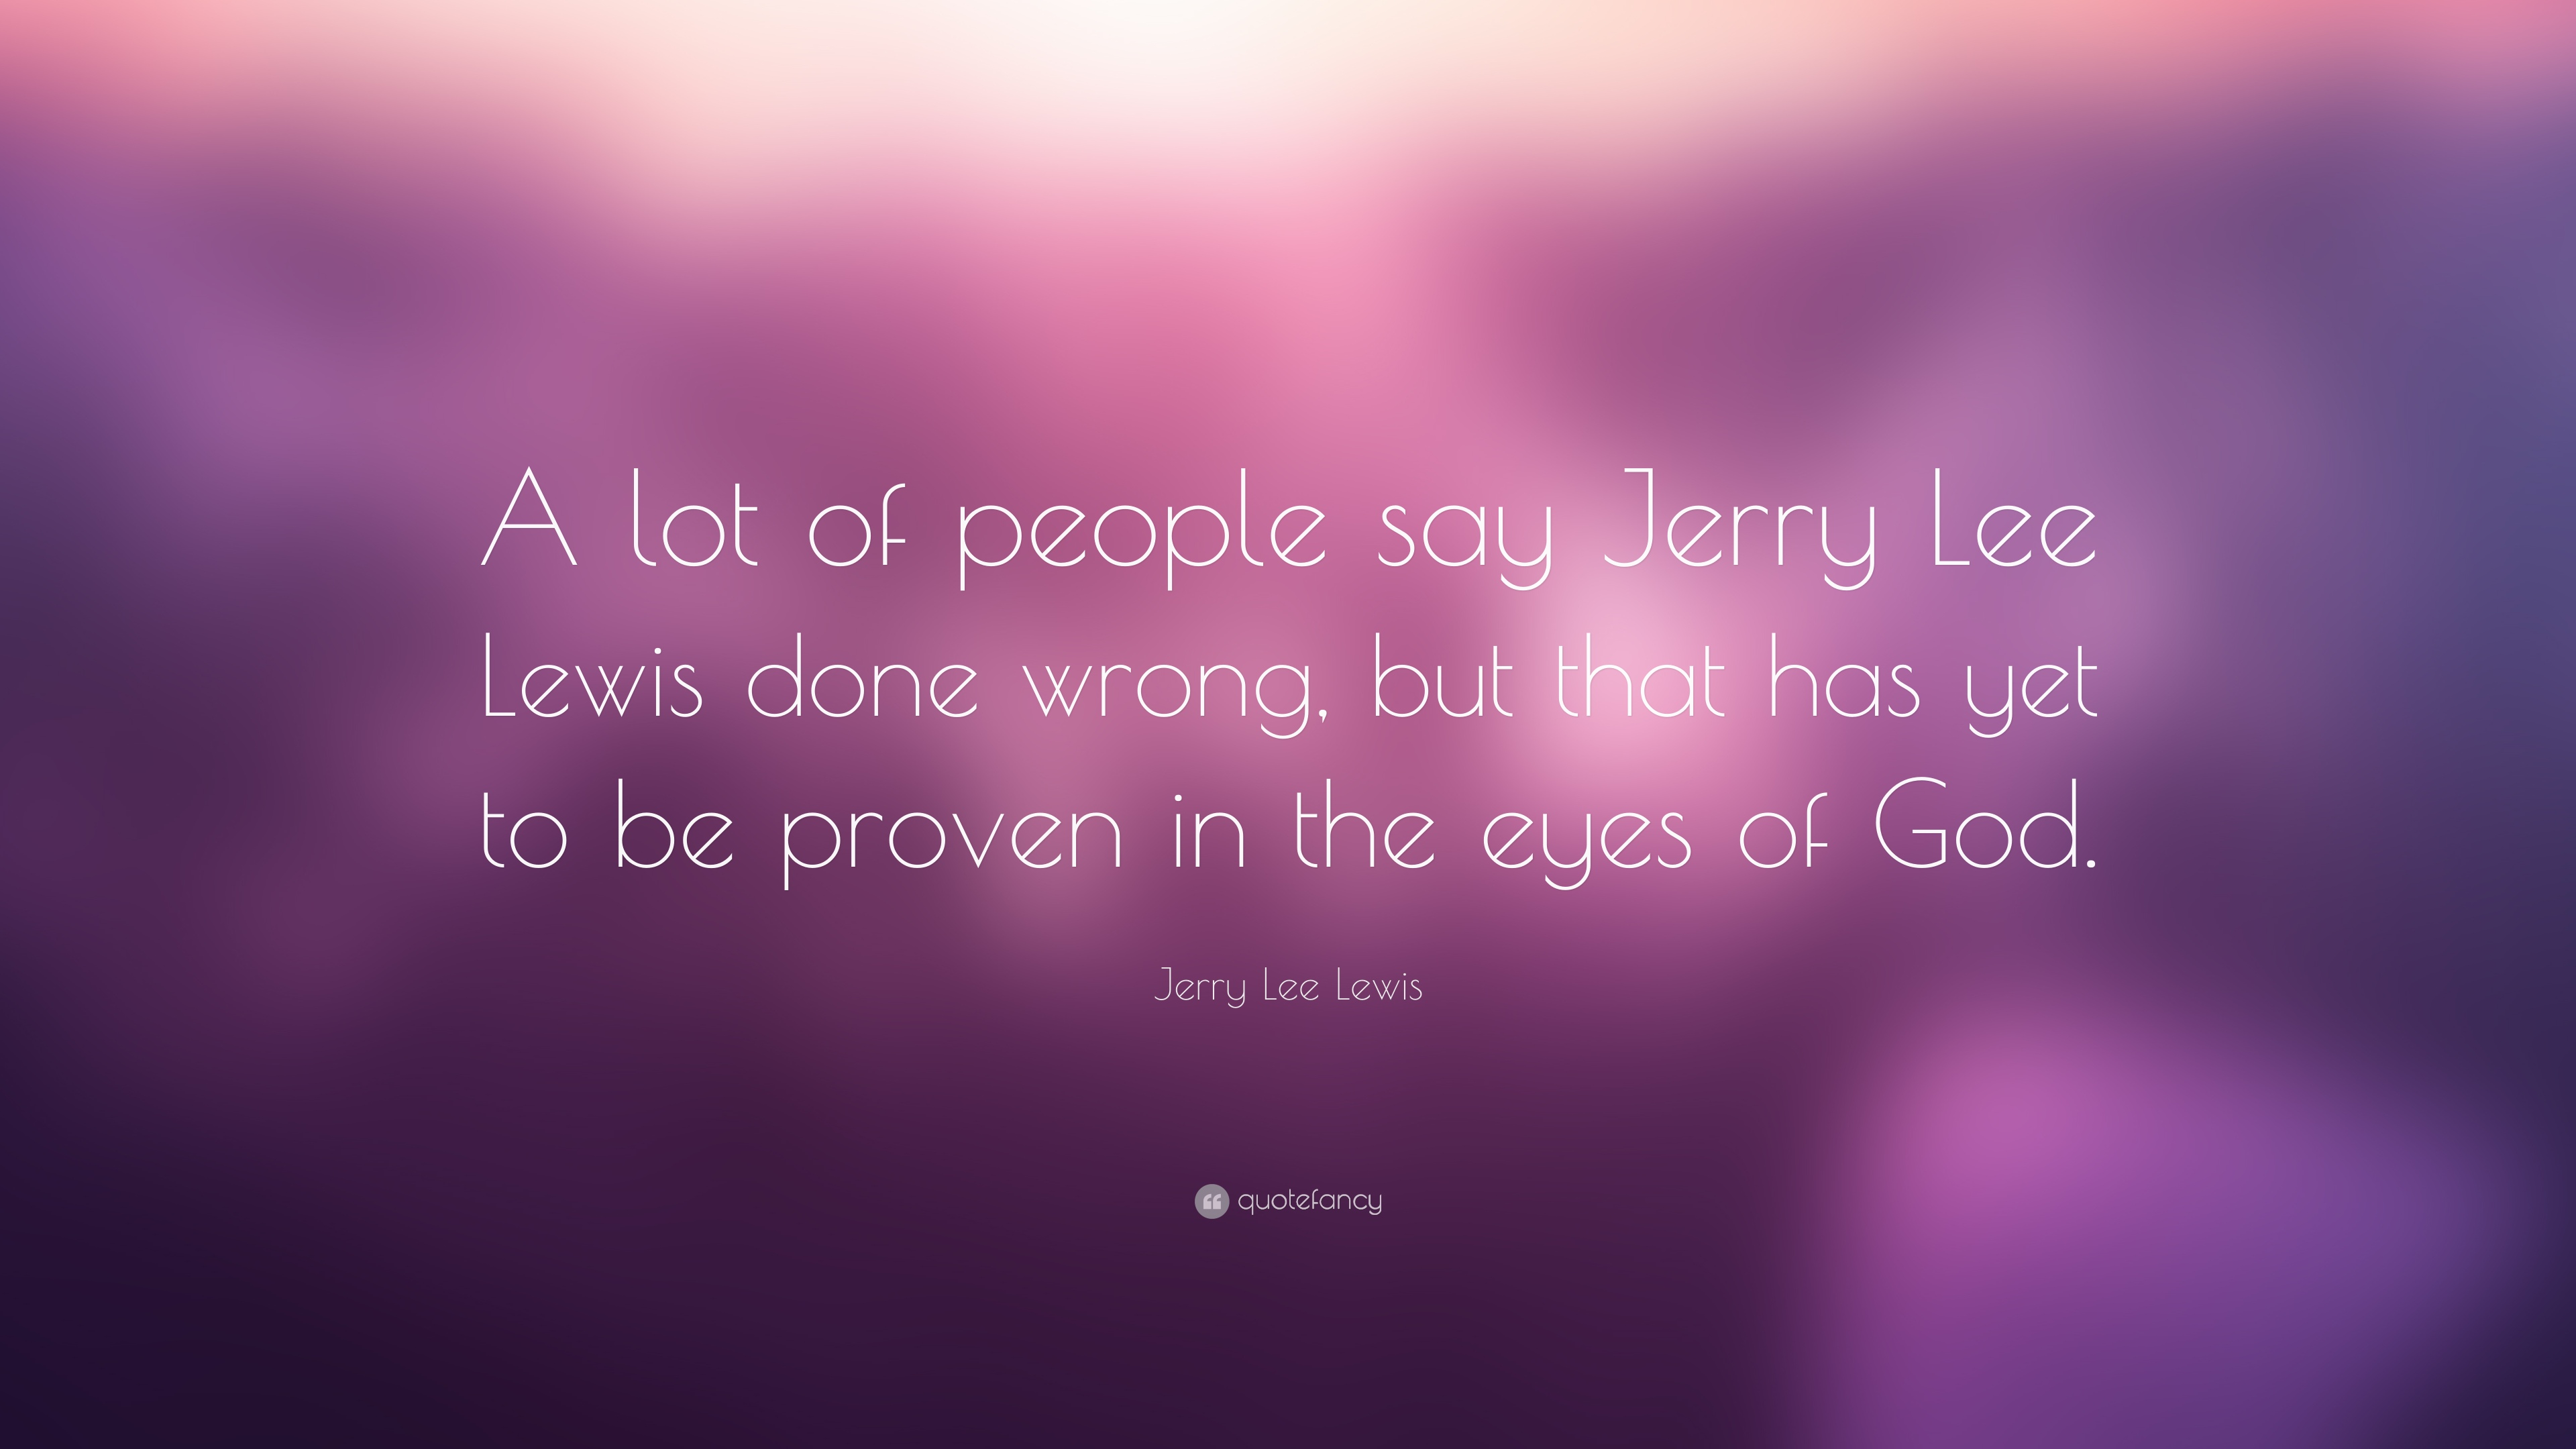 Jerry Lee Lewis Quote A Lot Of People Say Jerry Lee Lewis Done